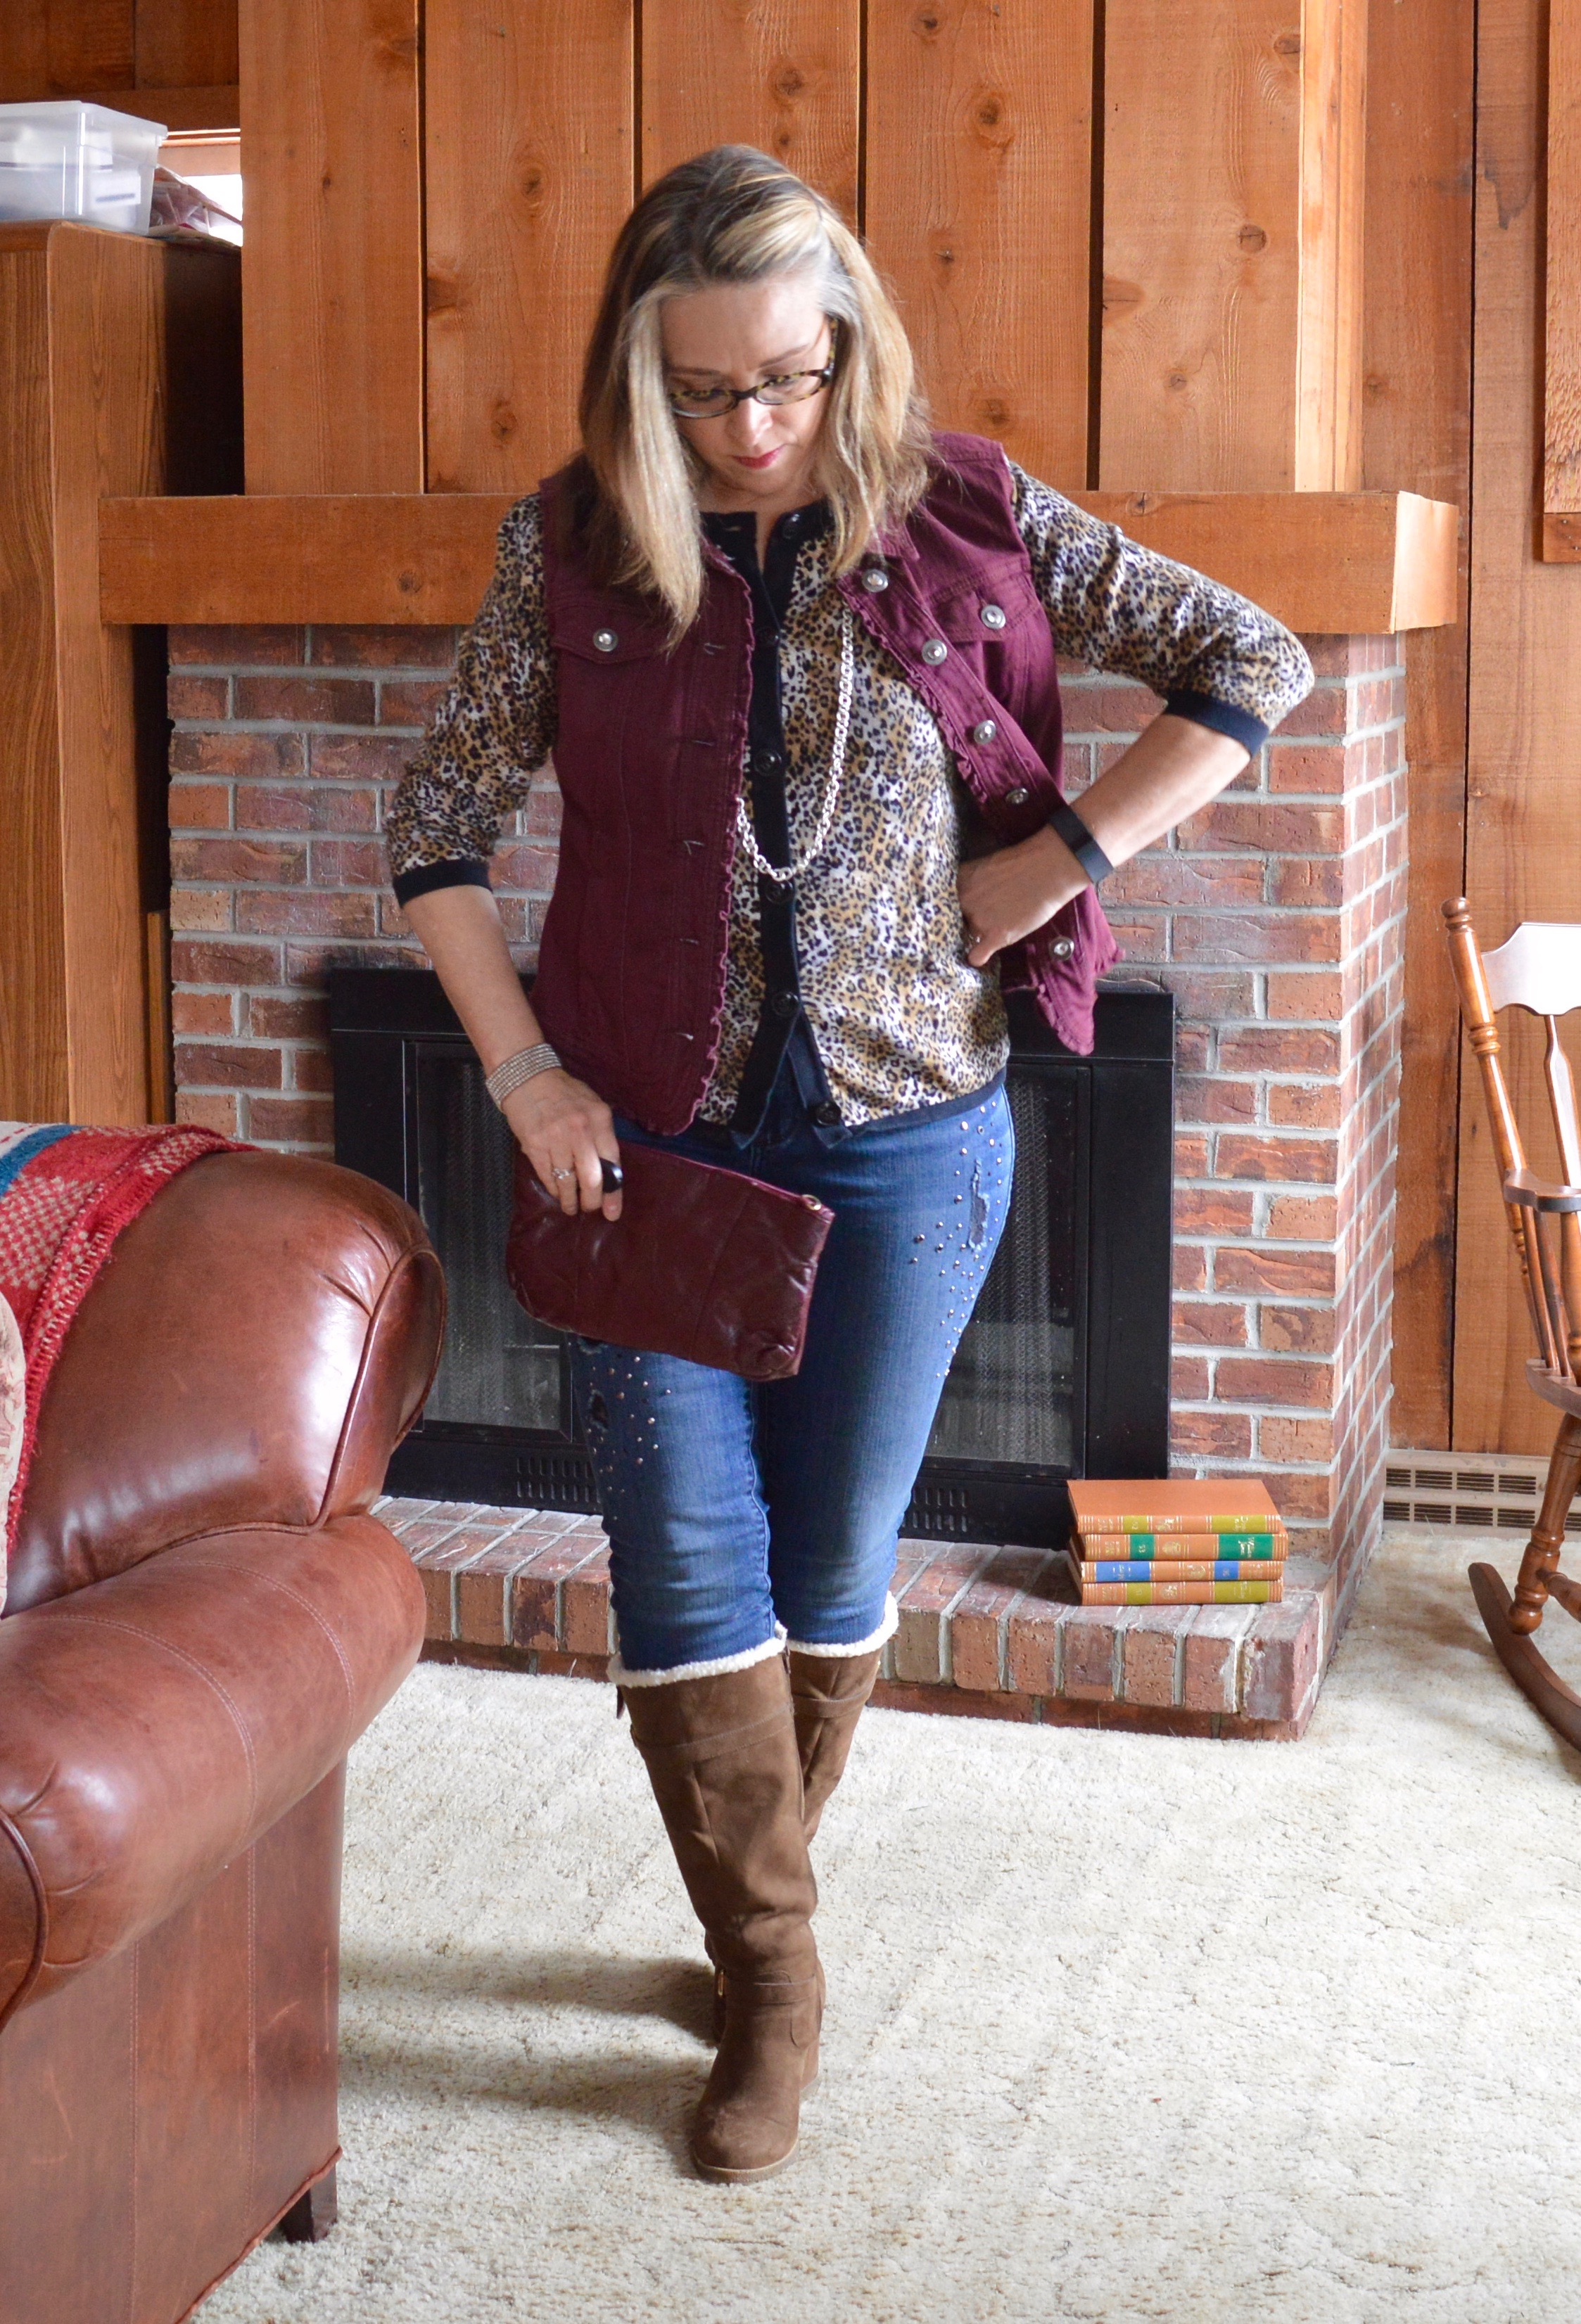 Layering love - wearing a shorter vest over a cardi